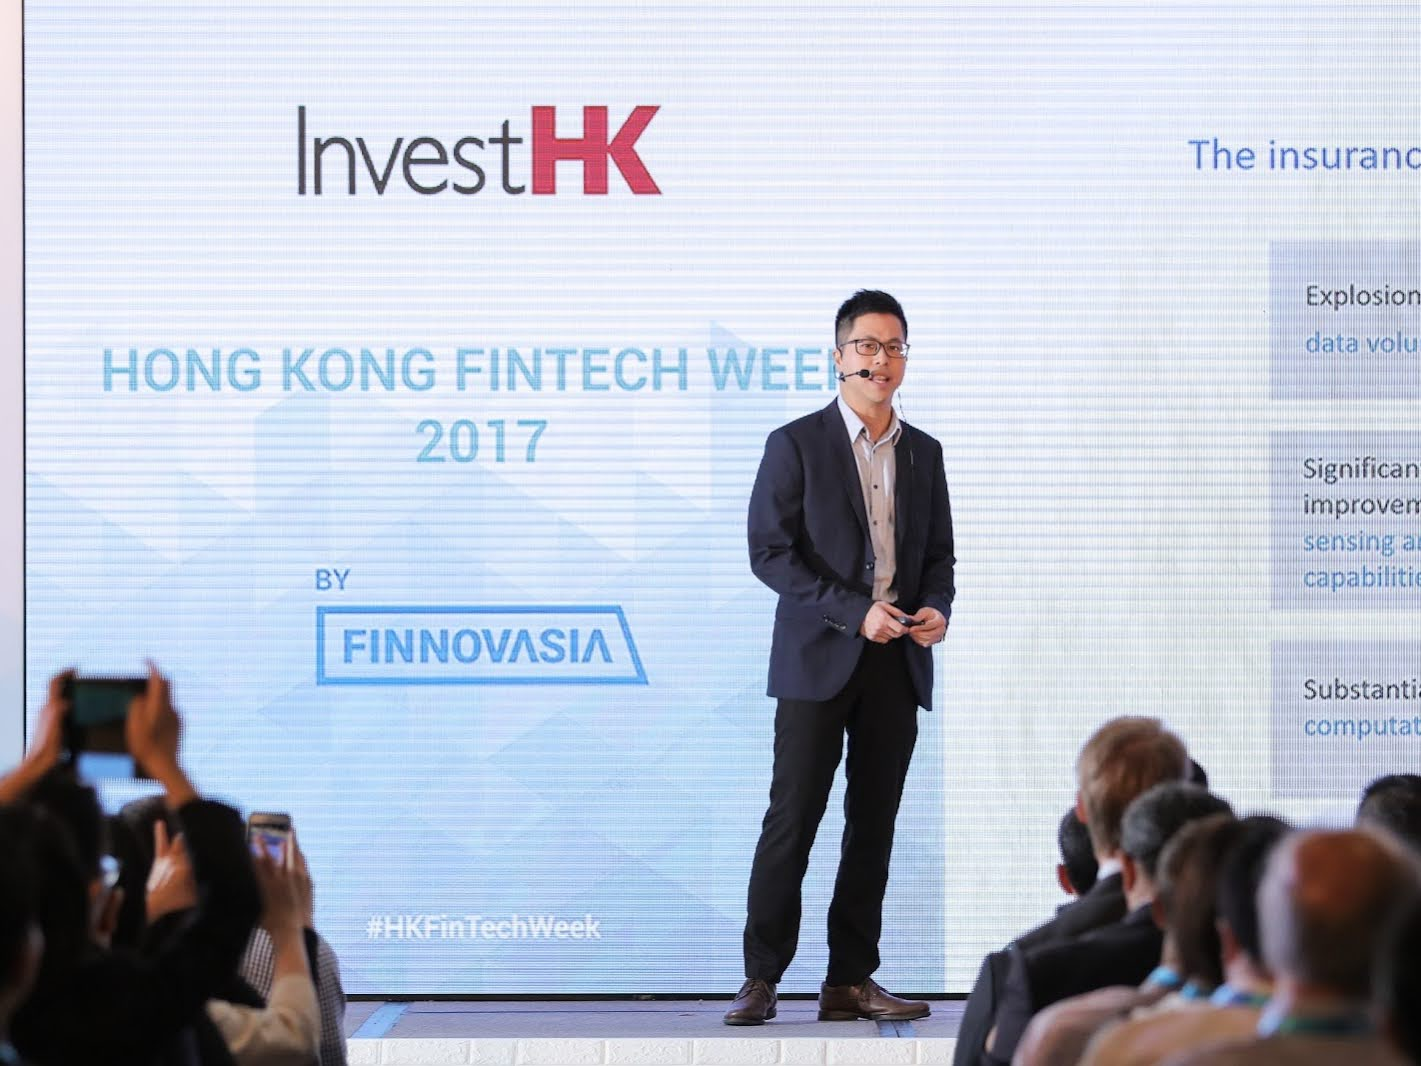 Kin in conference